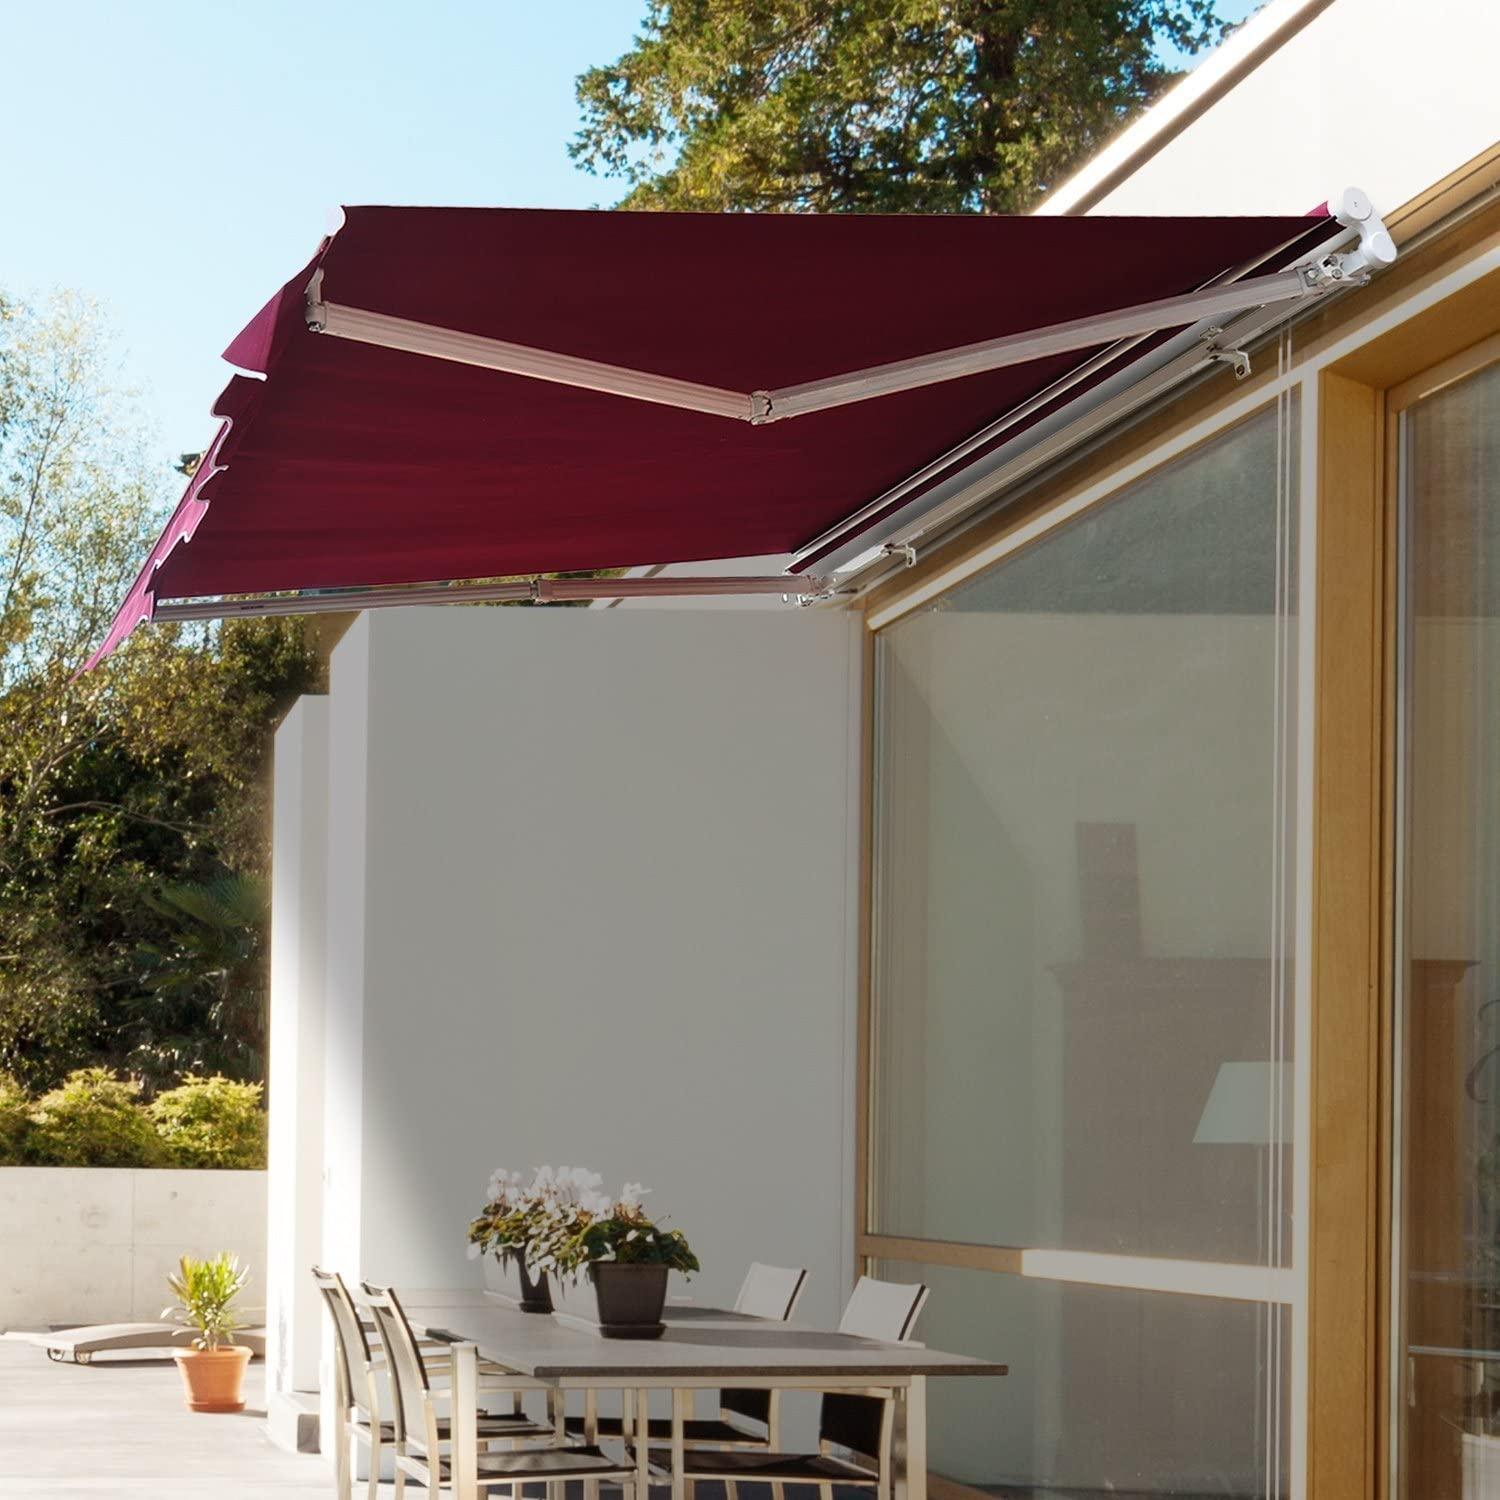 Outsunny 8'x7' Manual Retractable Water-Resistant Patio Awning Sun ...